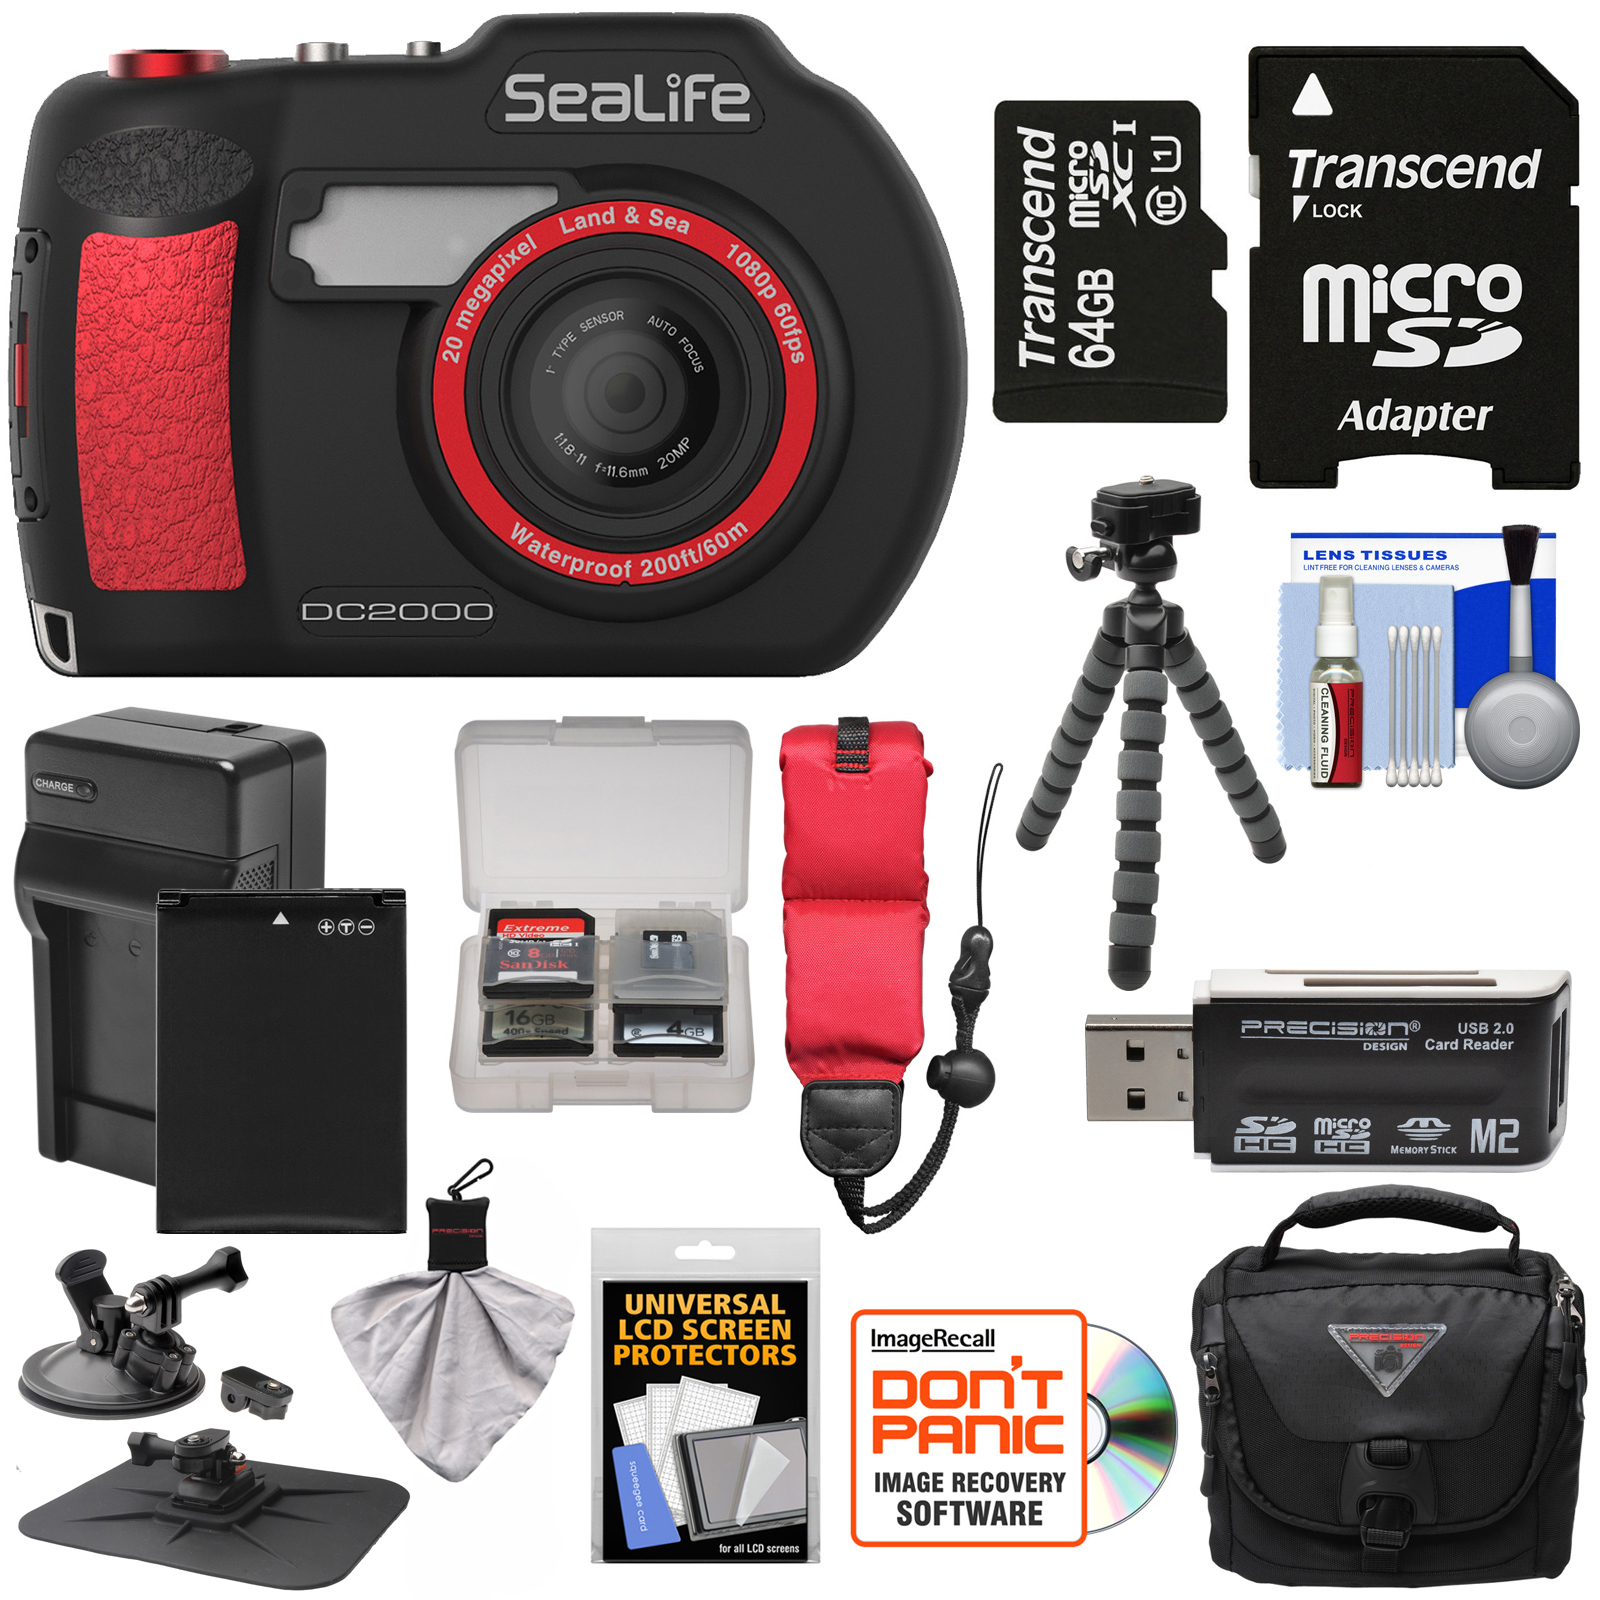 SeaLife DC2000 HD Underwater Digital Camera with 64GB Card + Battery & Charger + Case + Tripod + Suction Mount... by SeaLife